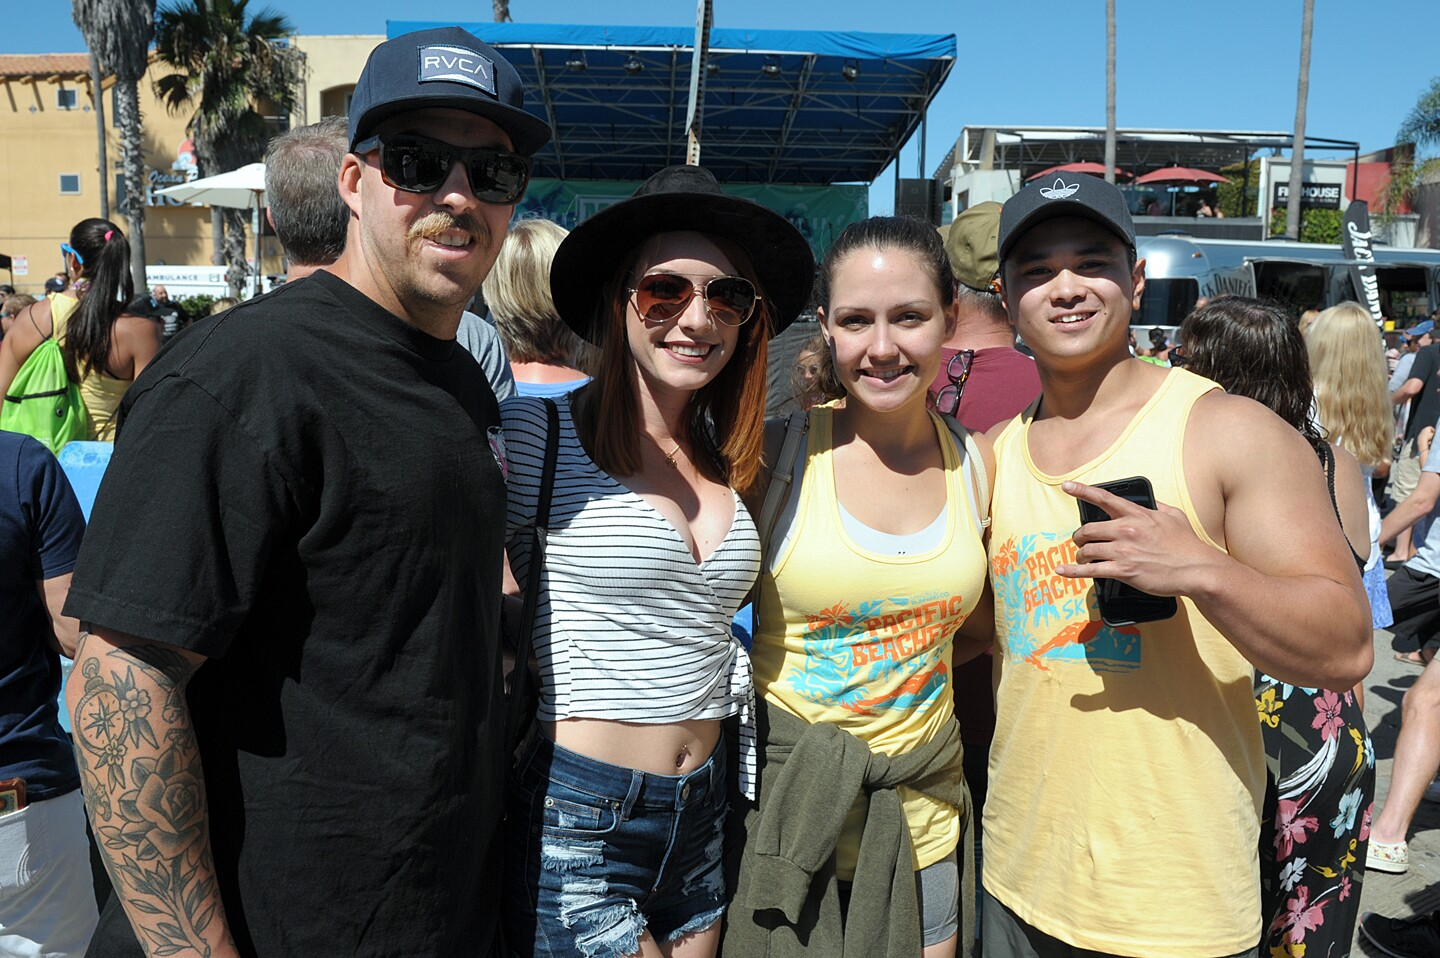 San Diegans kept the summer vibes going at Pacific Beachfest on Saturday, Oct. 5, 2019.